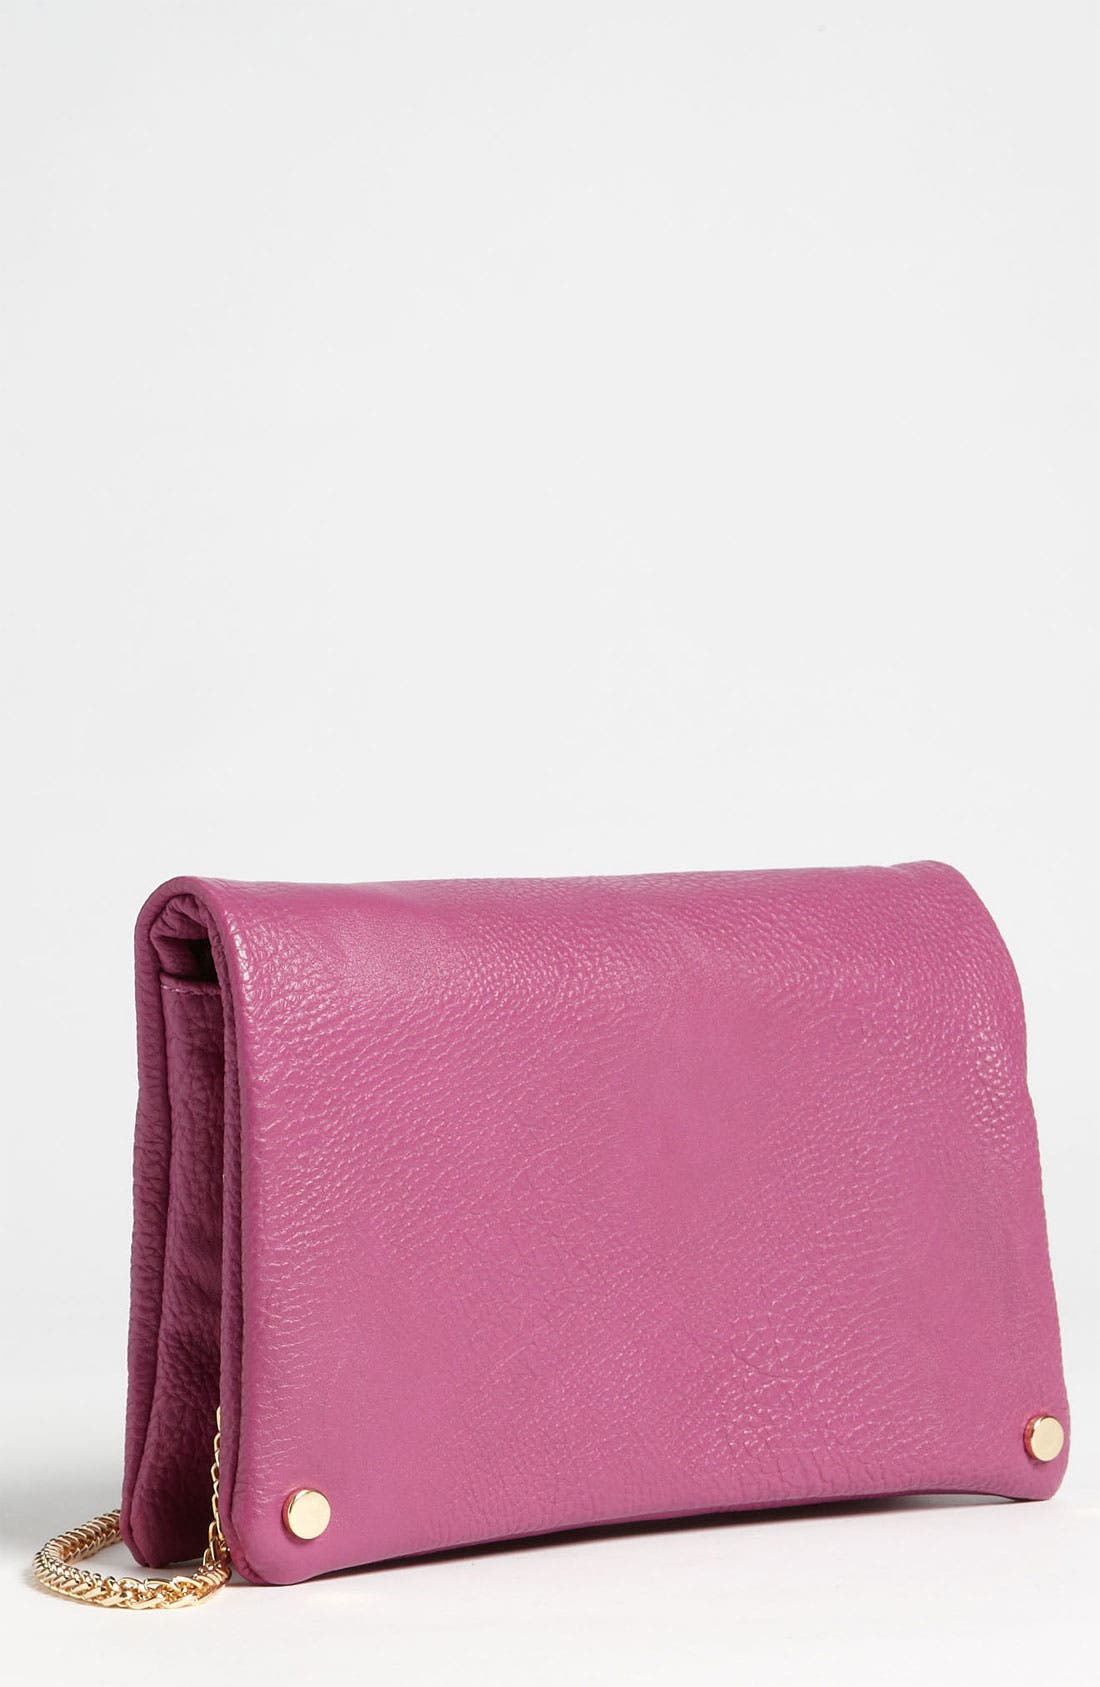 Main Image - Street Level Convertible Faux Leather Crossbody Bag